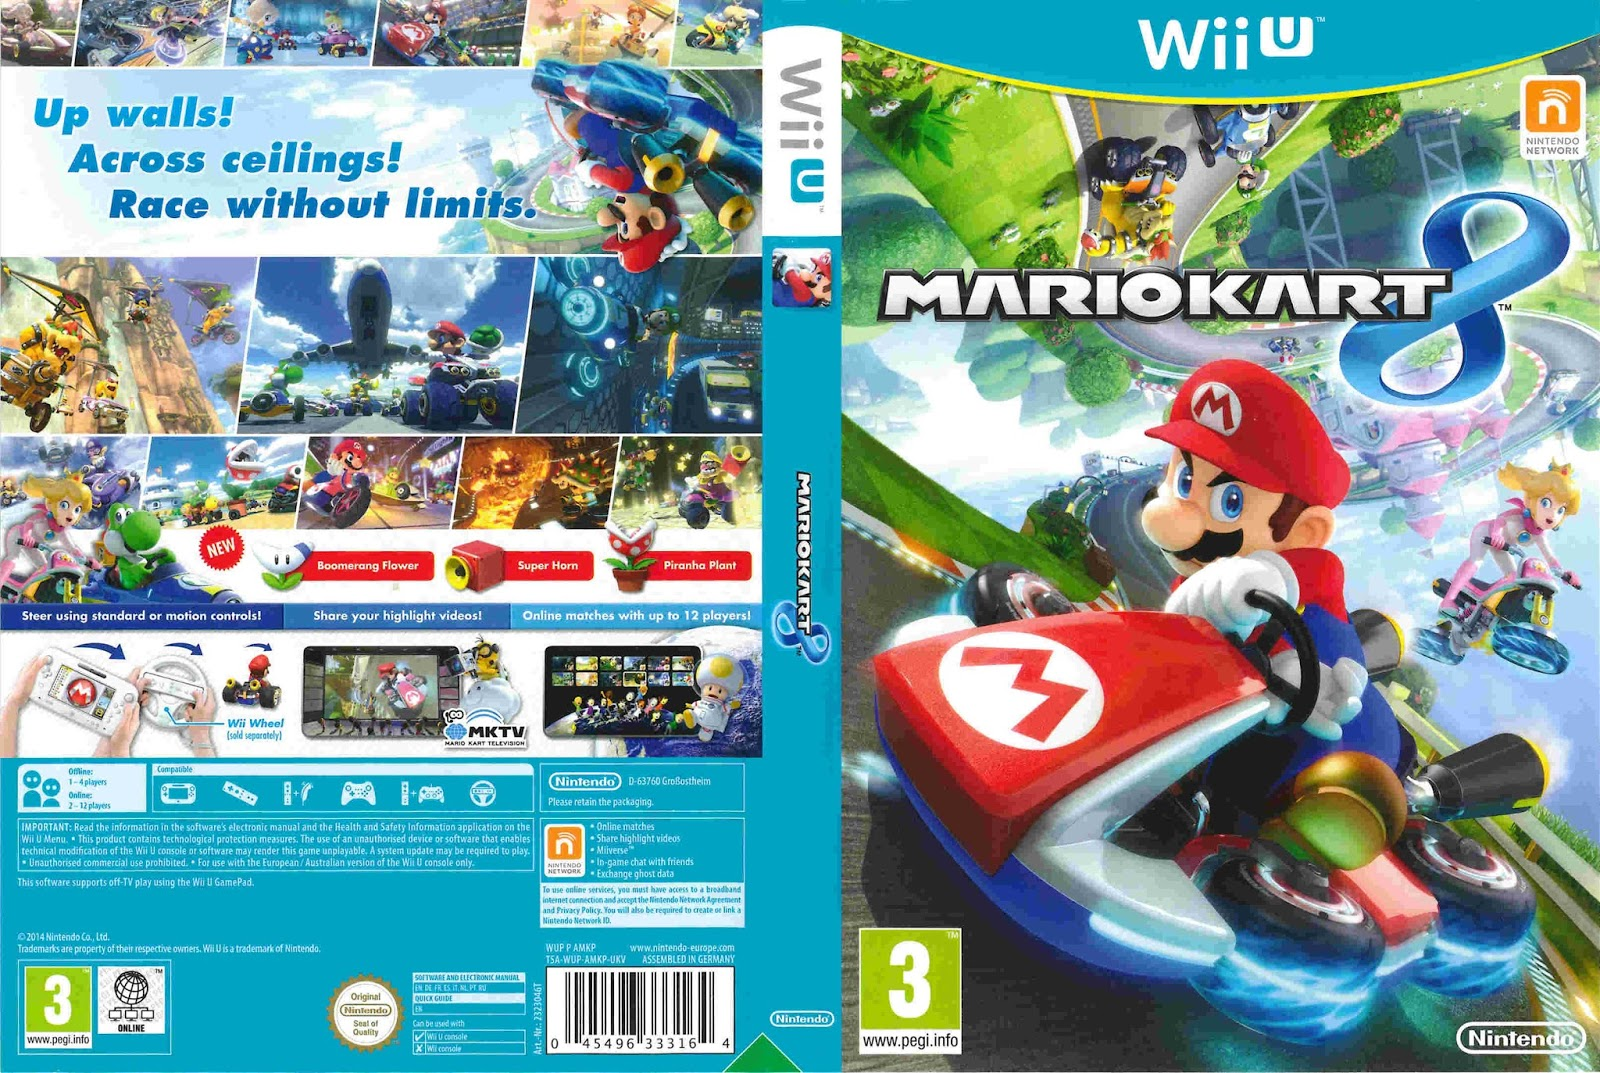 base um gtba mario kart 8 capa game wii u. Black Bedroom Furniture Sets. Home Design Ideas